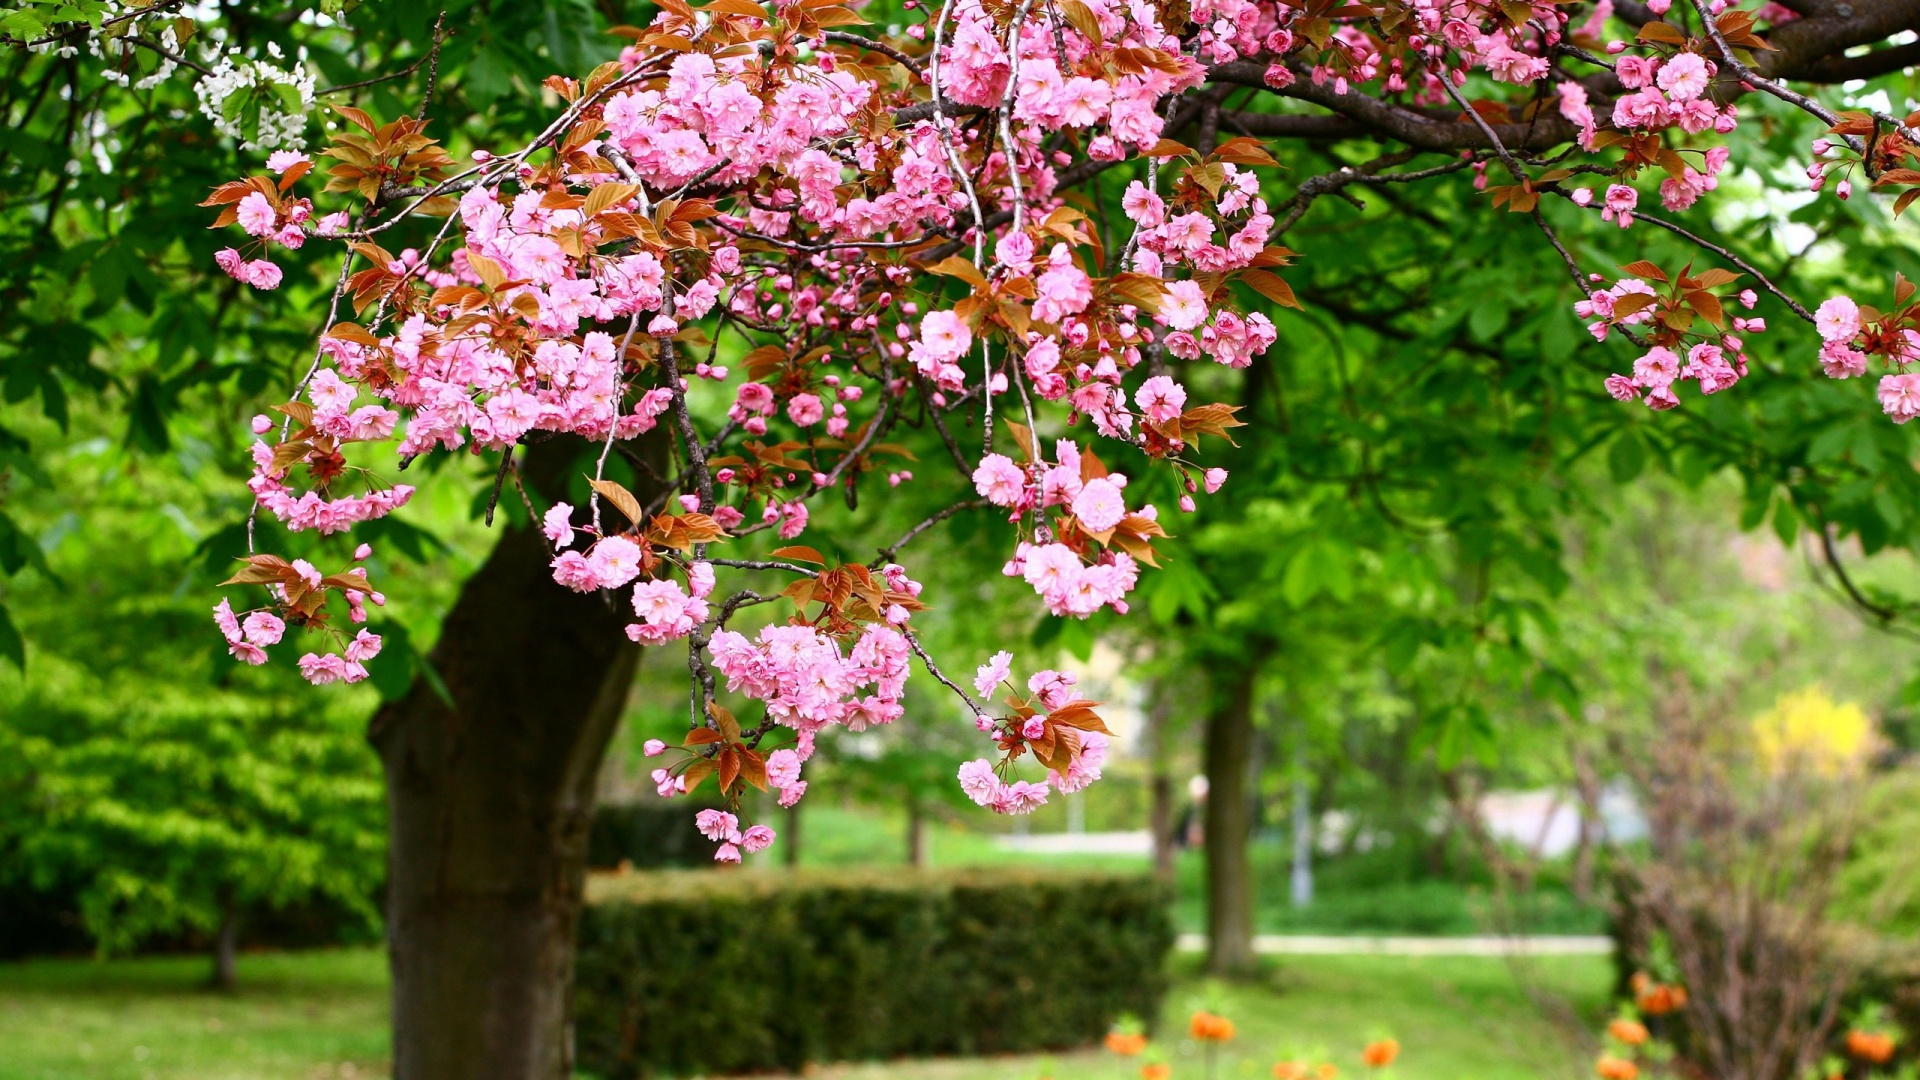 wallpaperwiki spring hd desktop wallpaper download pic